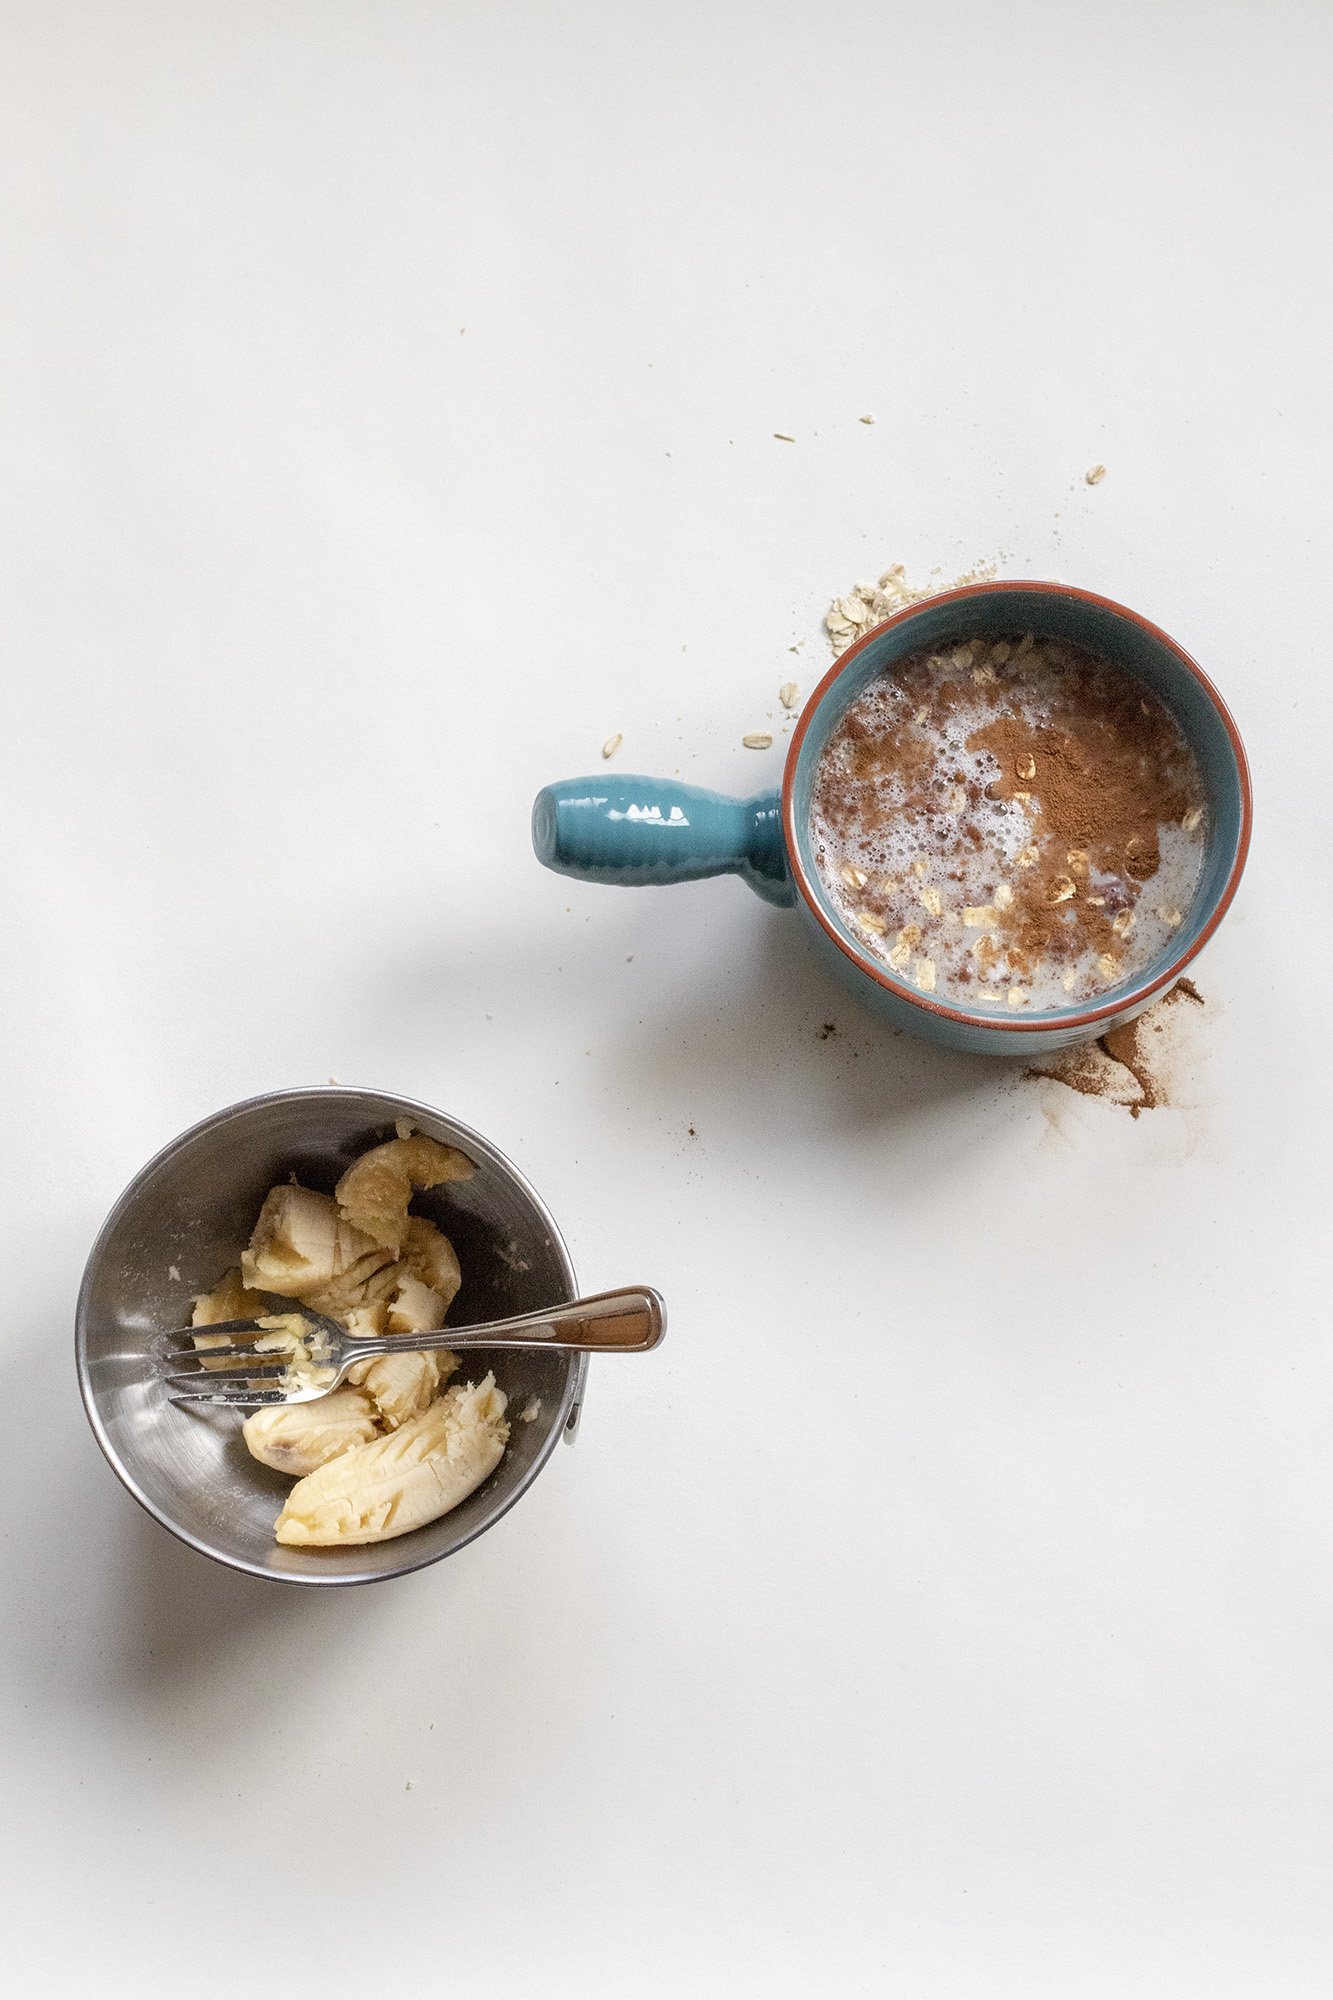 Mashed band with a fork in a metal bowl and egg whites with cinnamon and milk in another blue bowl. Both on a white background.